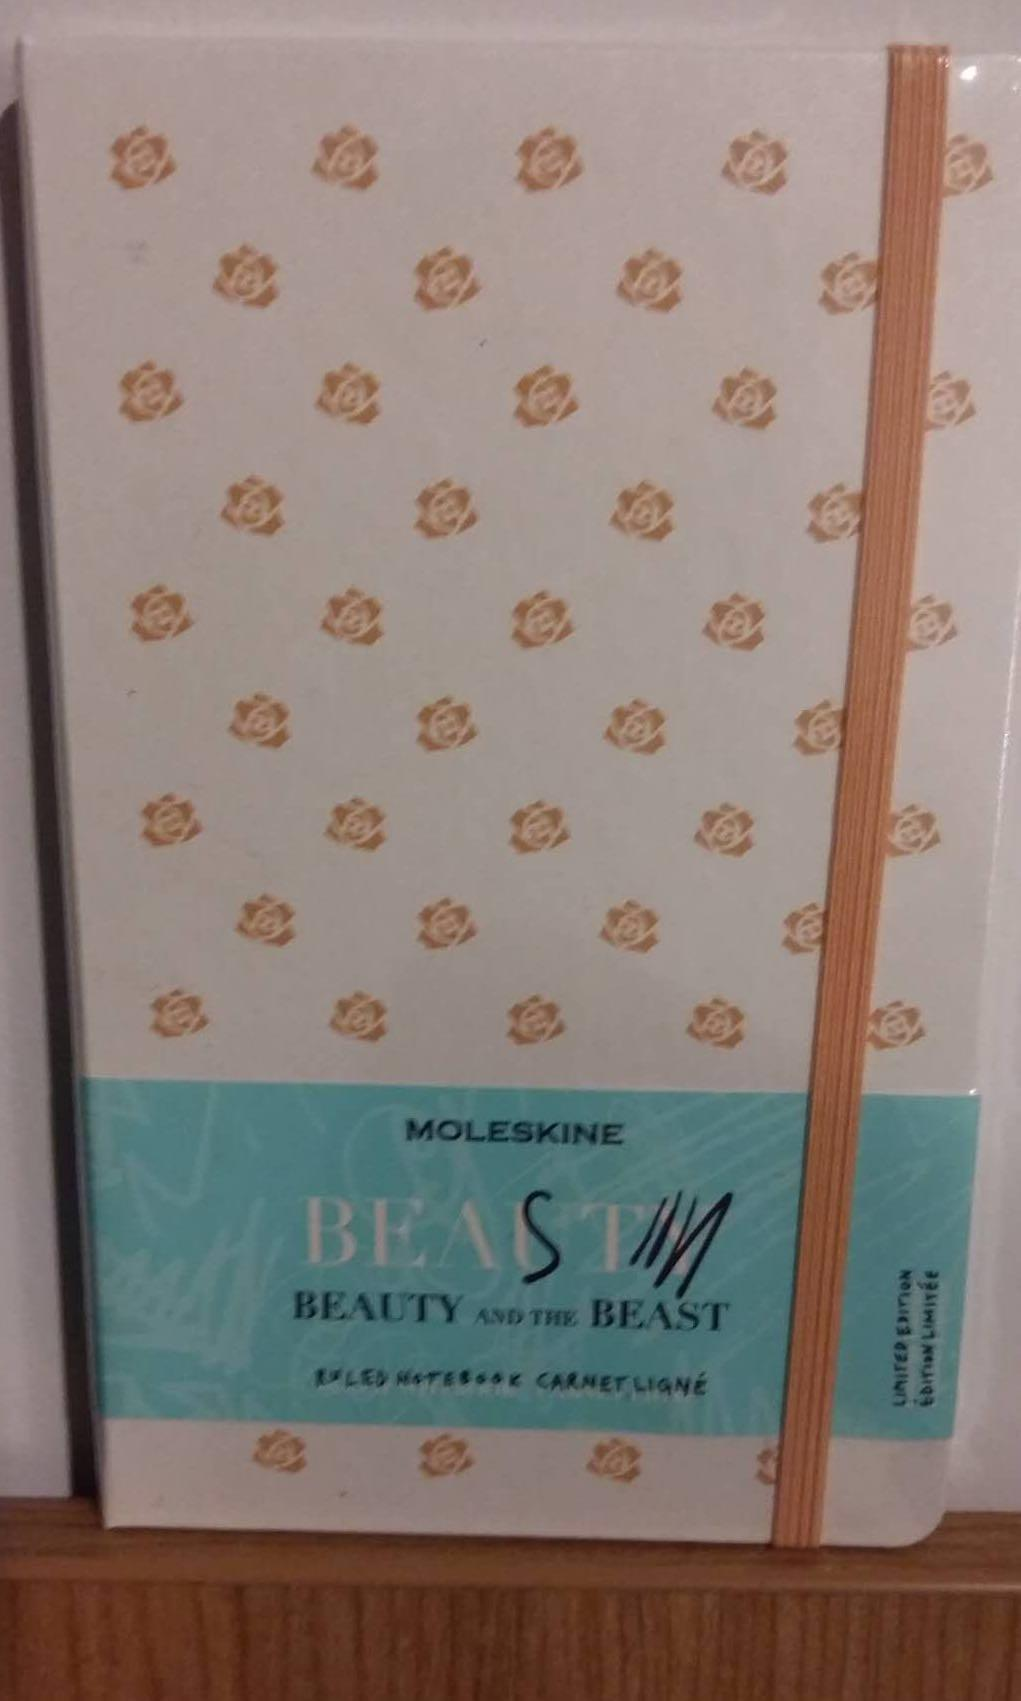 BRAND-NEW, UNOPENED MOLESKINE LIMITED EDITION BEAUTY AND THE BEAST ROSE THEME ruled notebook